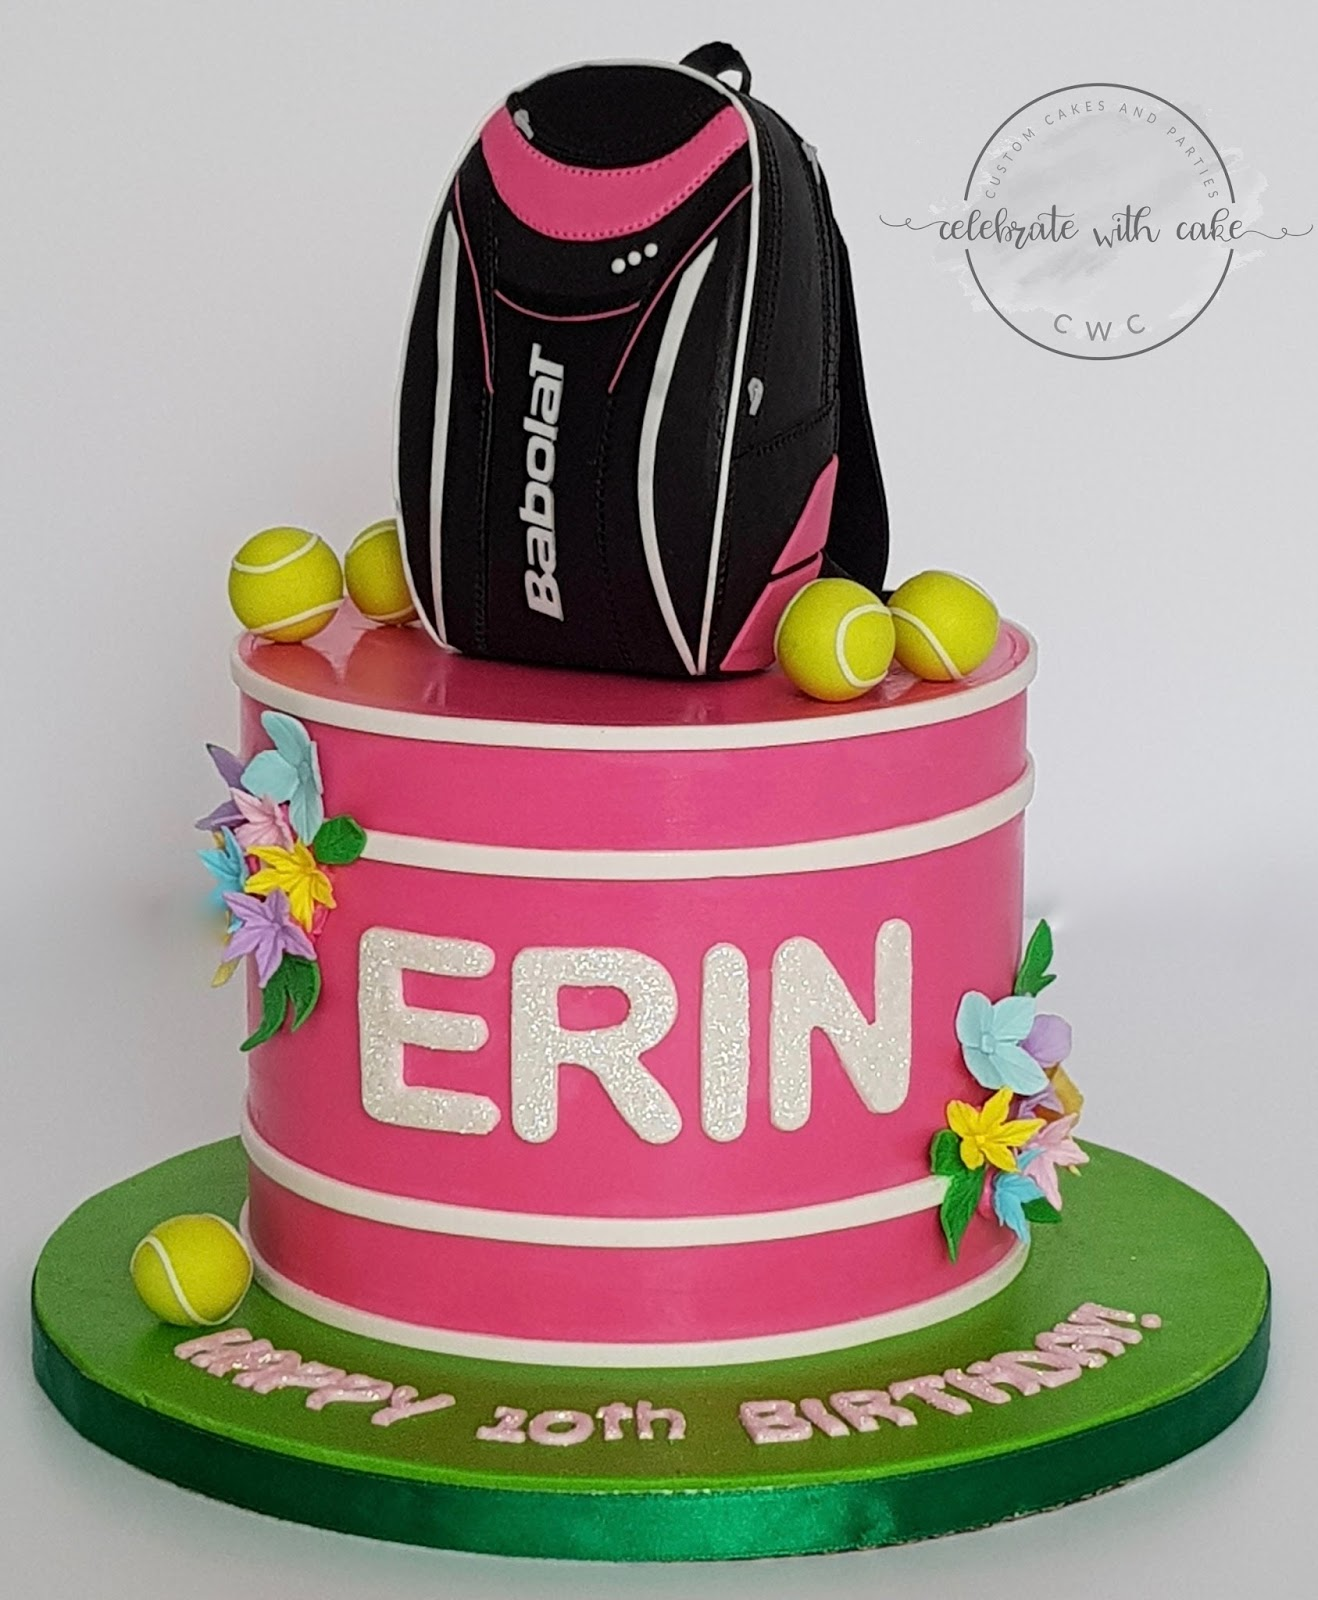 Celebrate with Cake!: Babolat Tennis Backpack on Single Tier